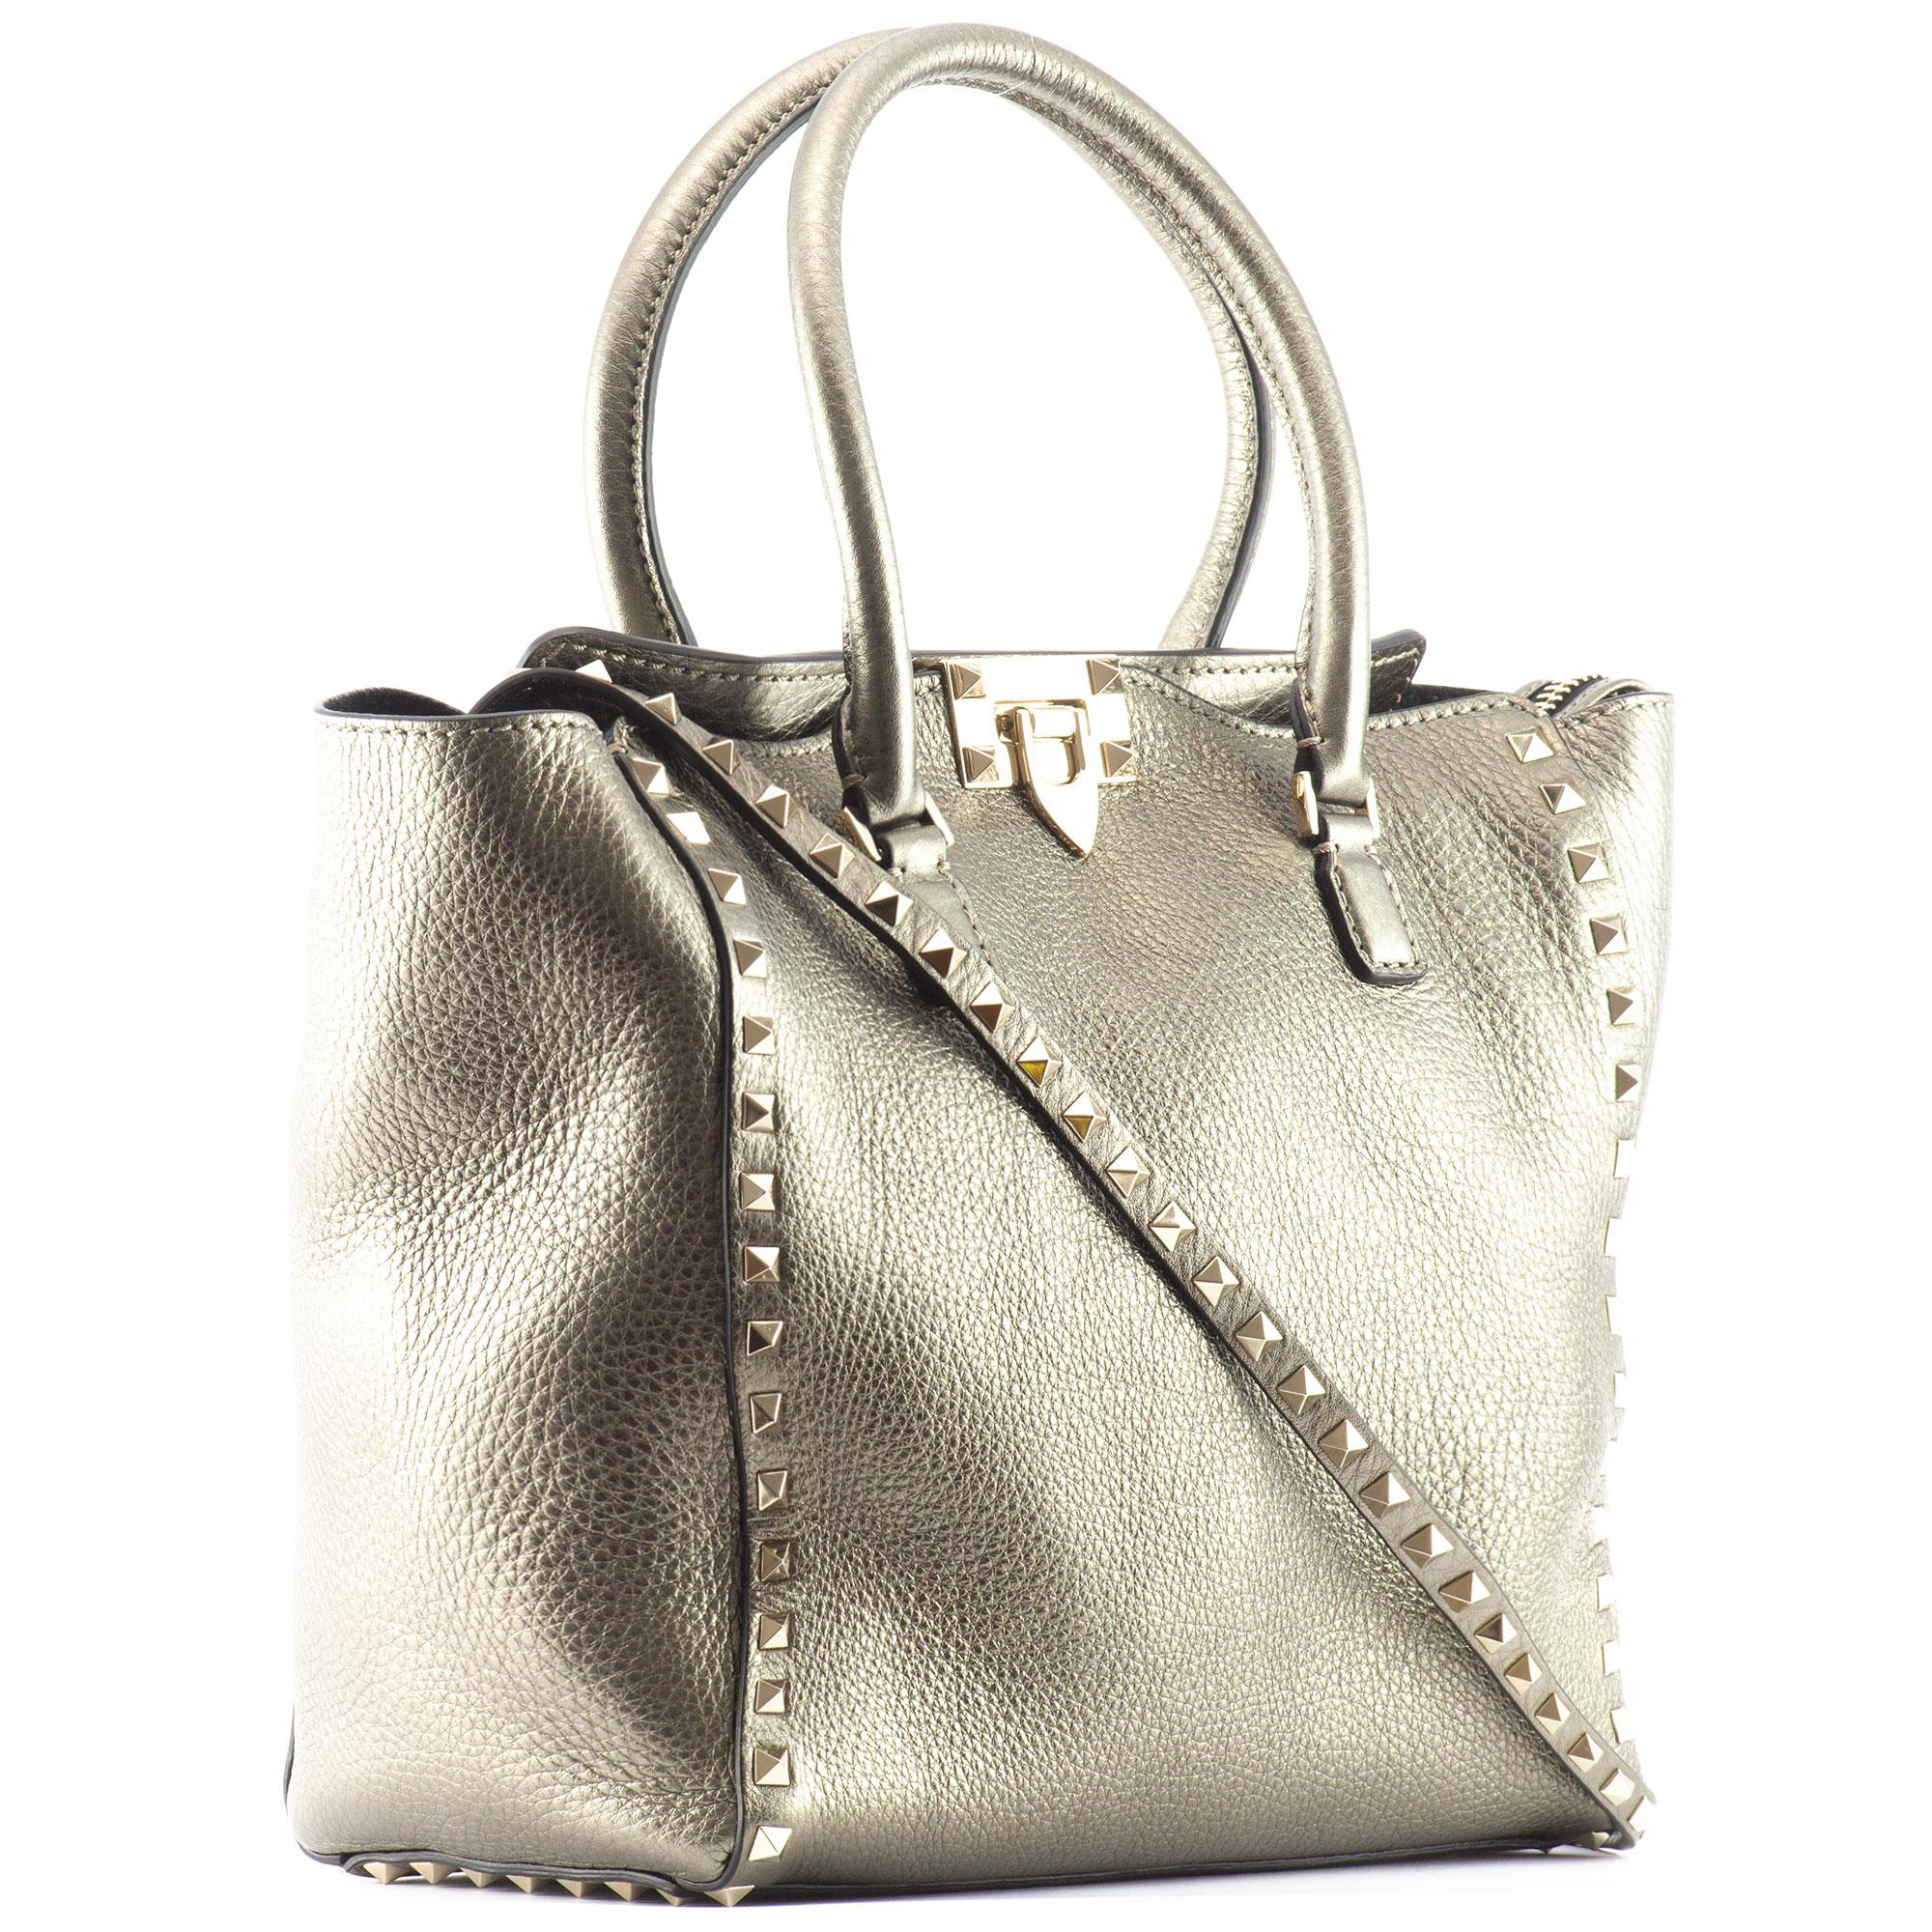 Valentino Rockstud Medium Metallic Leather Shoulder Bag In